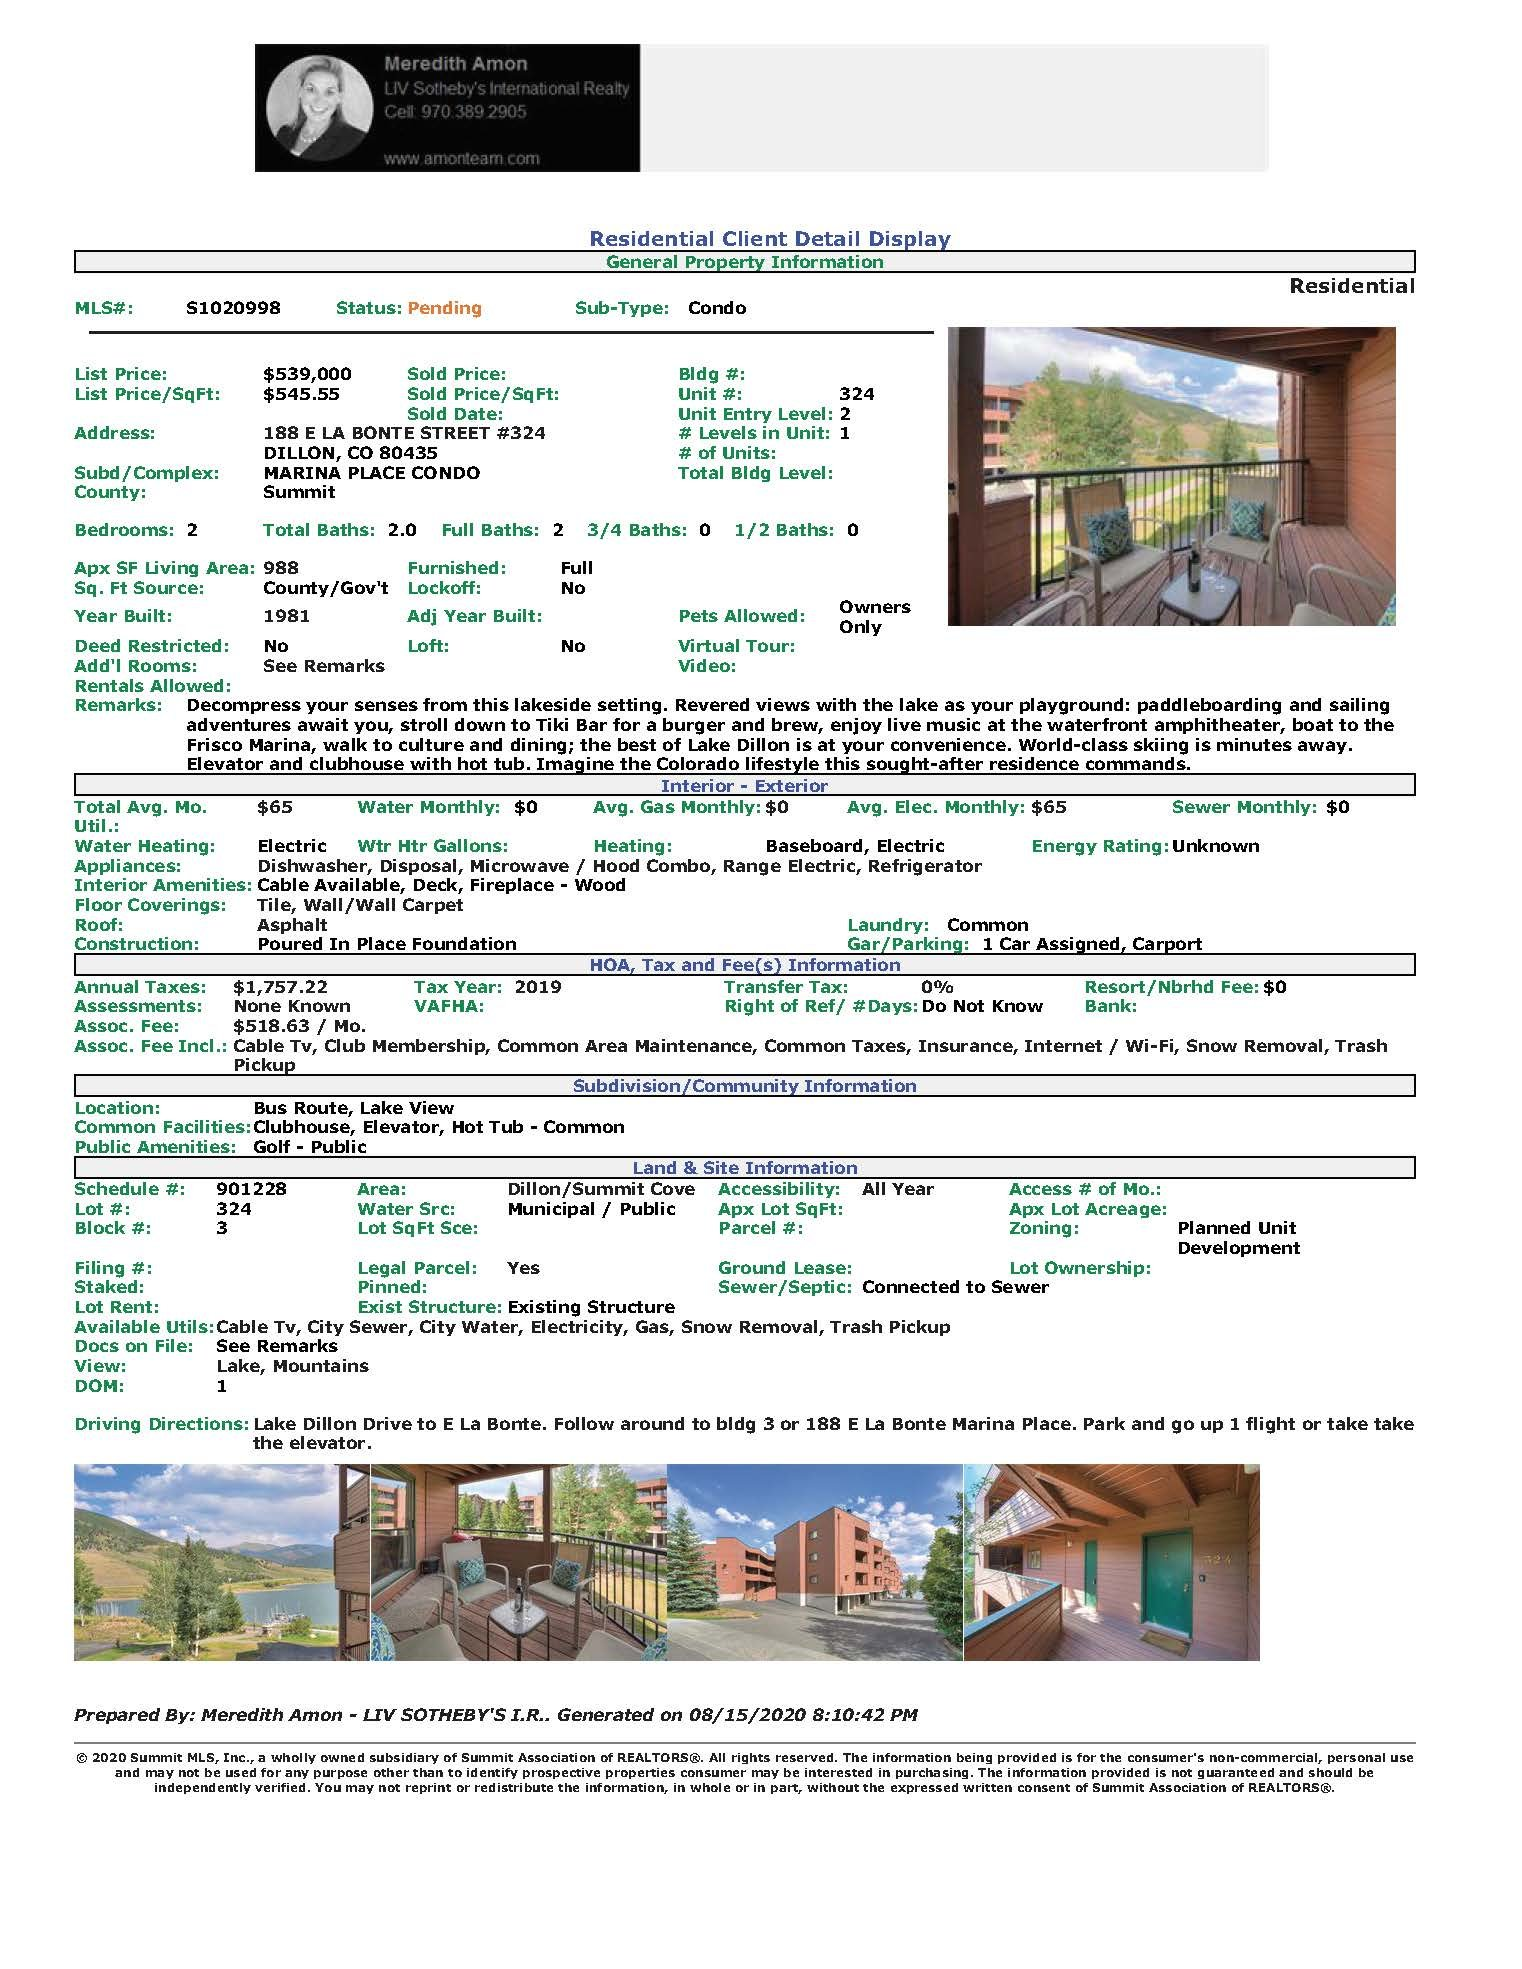 Marina_Place_Condo_For_Sale_Lake_Dillon_Colorado